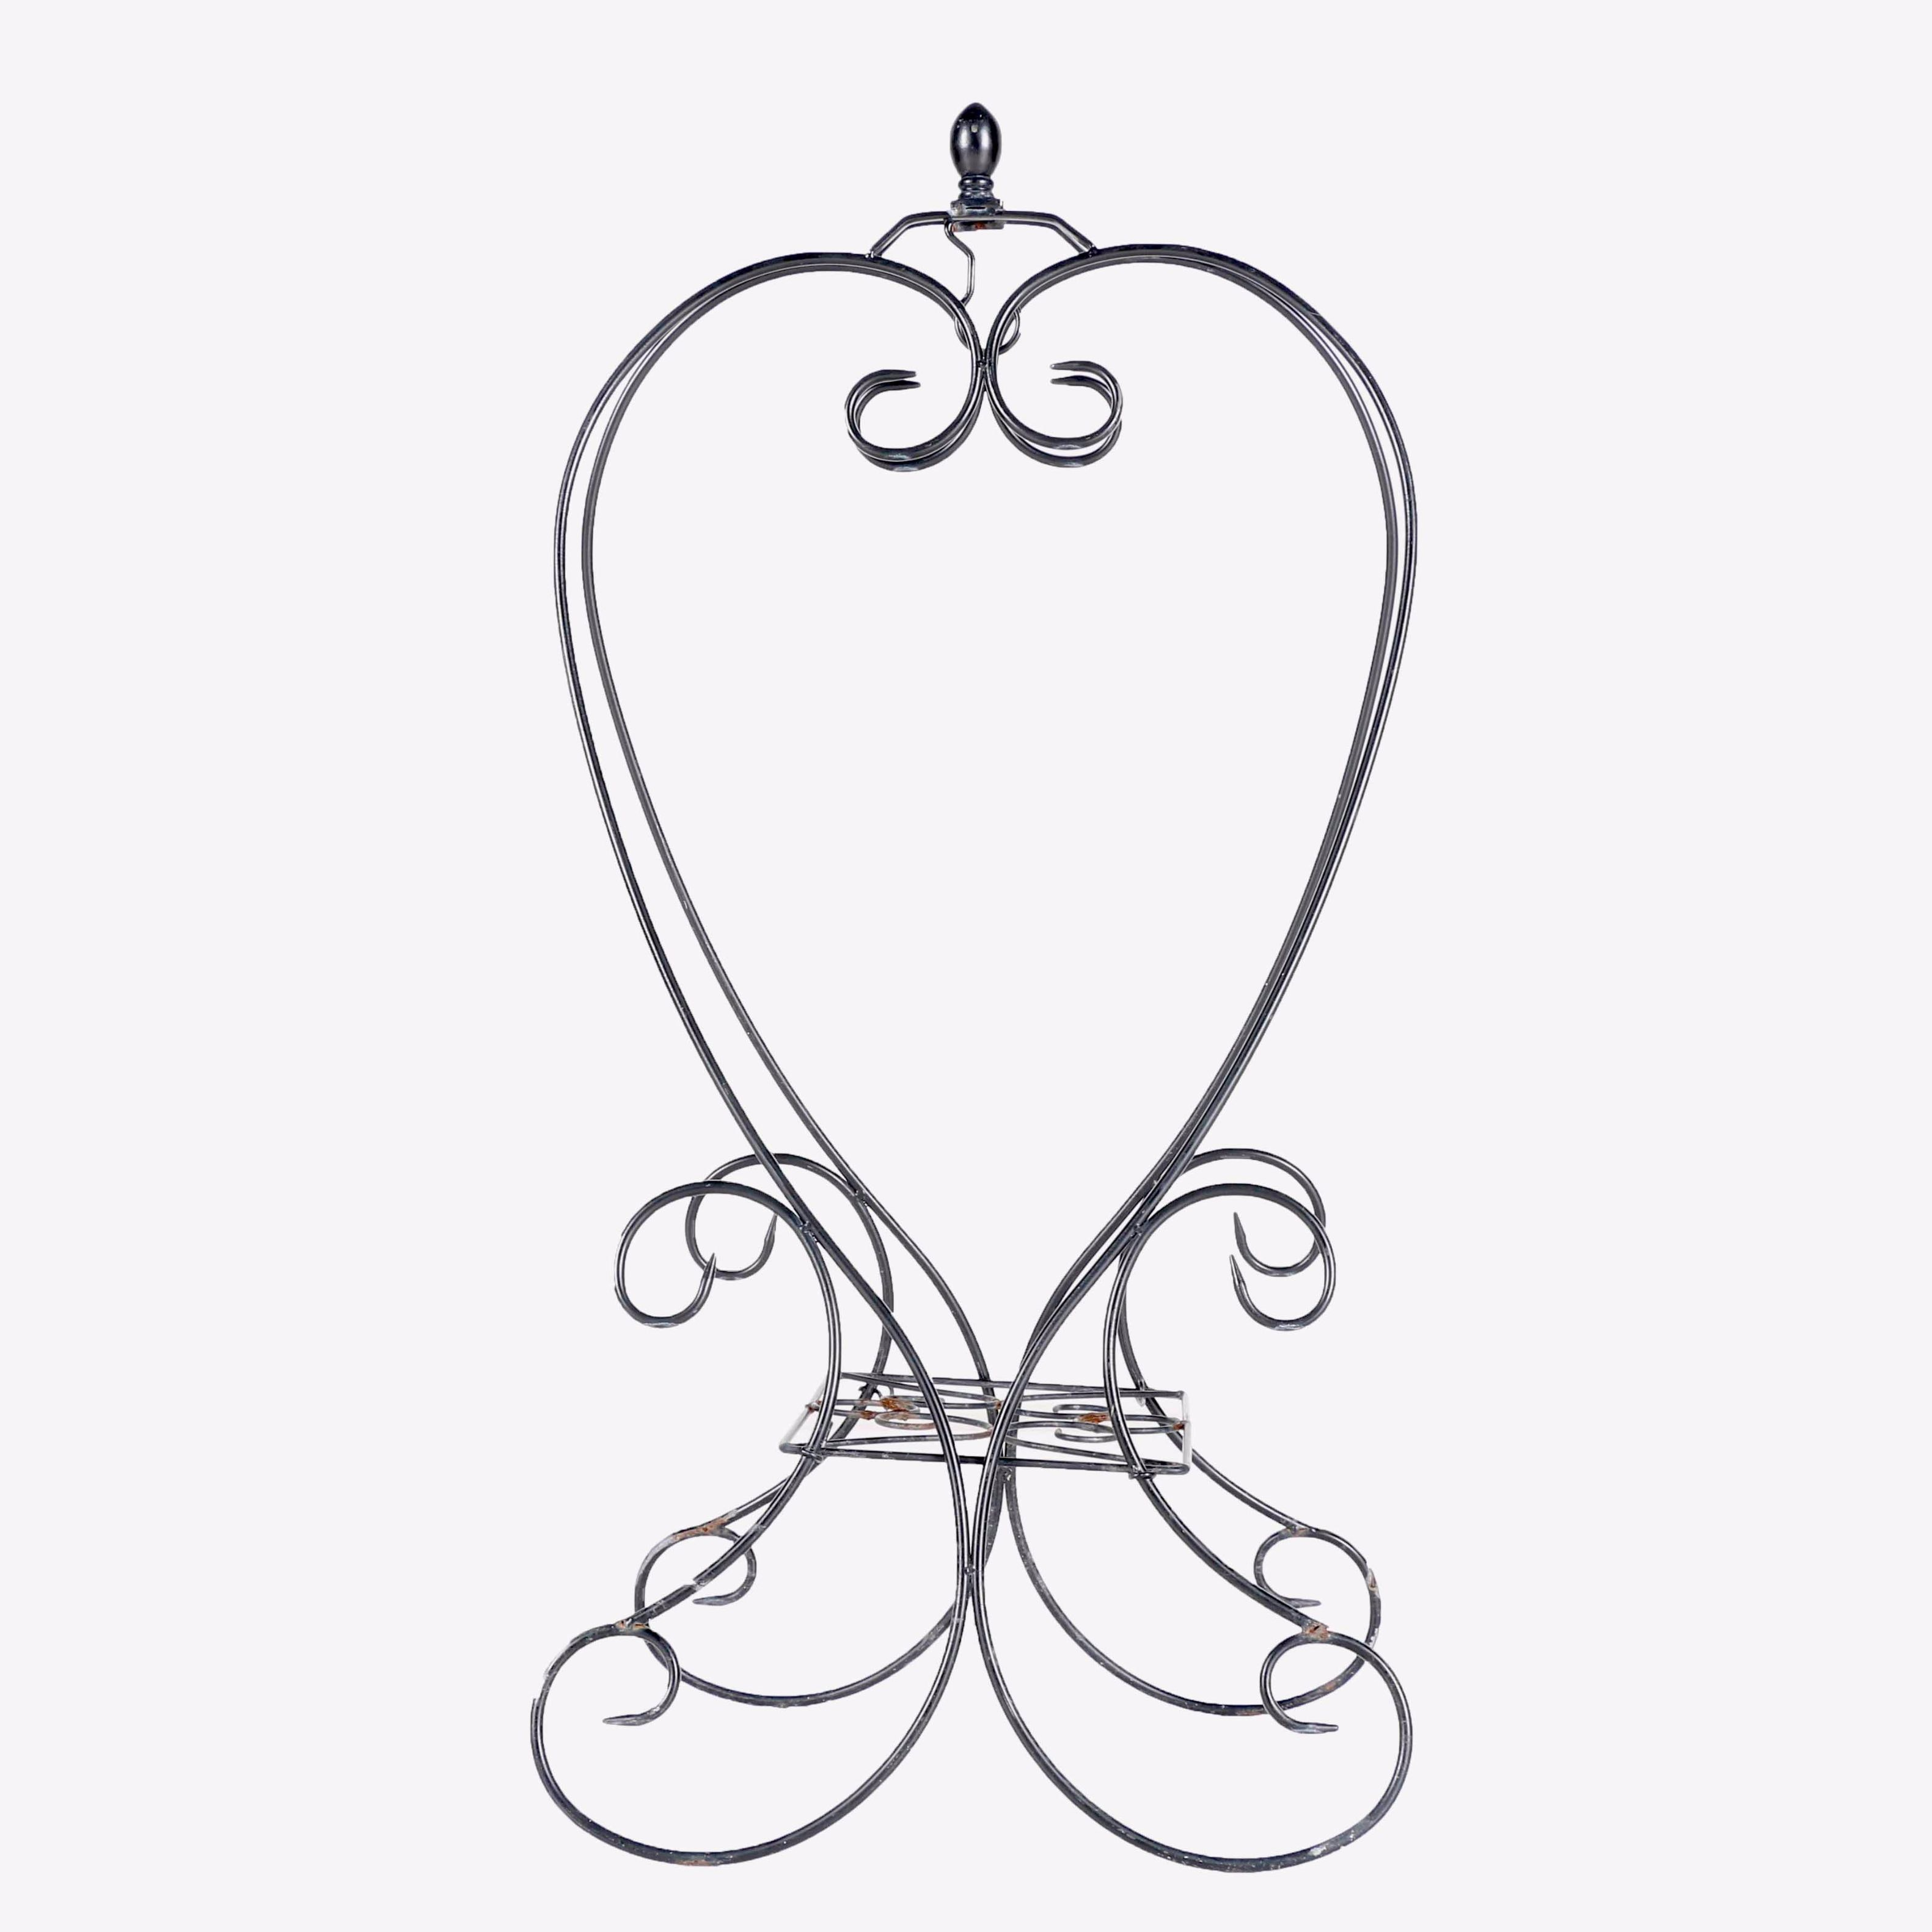 Ceramic Urns and Wrought Iron Hanging Plant Stand